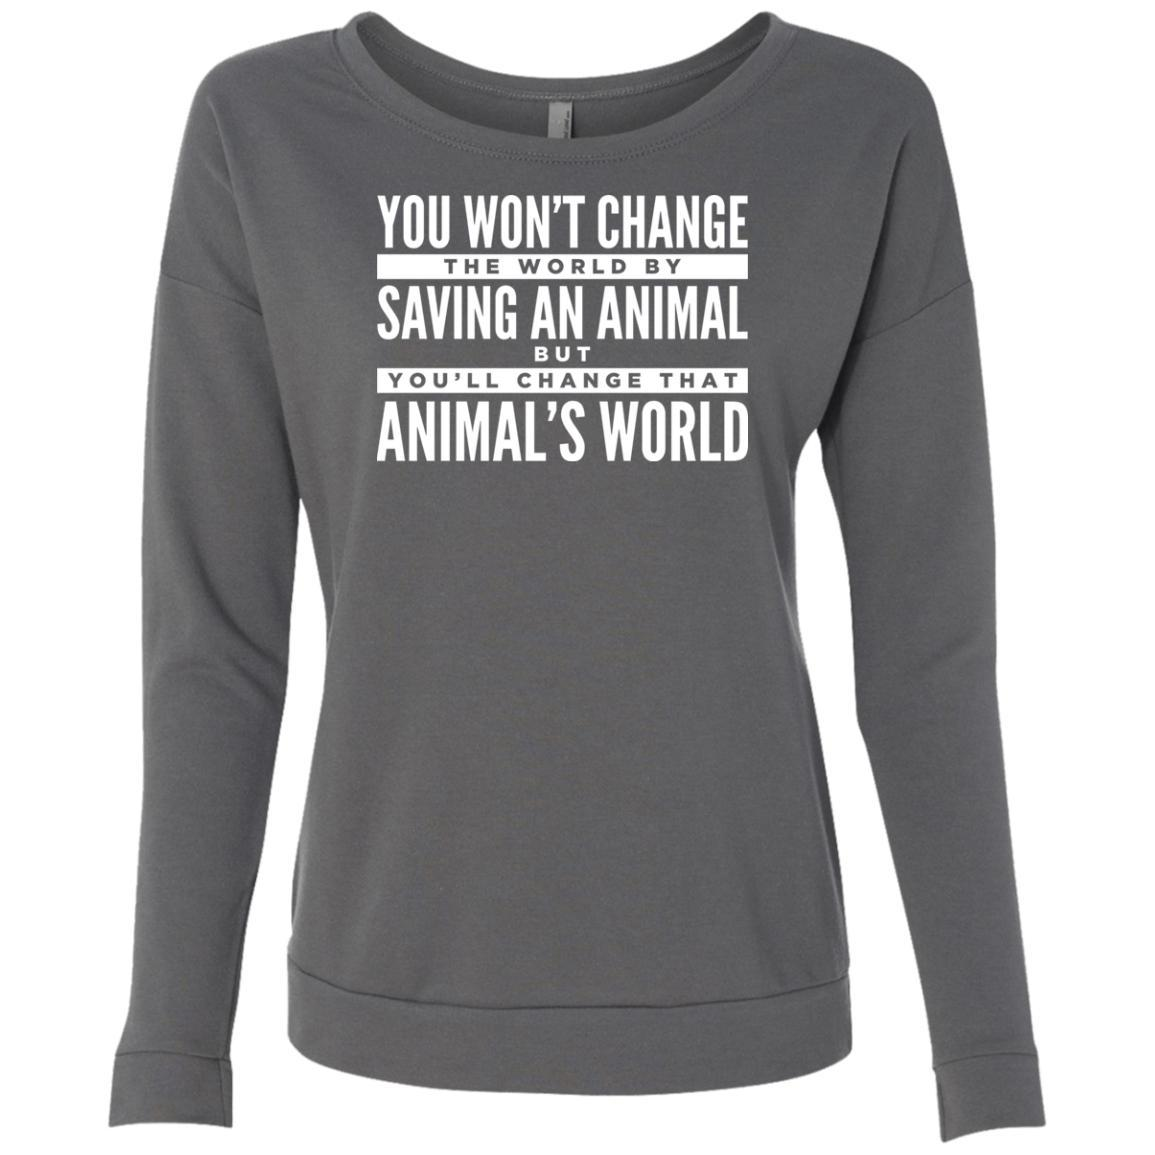 You Won't Change The World By Saving An Animal, But You Will Change That Animal's World Sweatshirt For Women - Ohmyglad